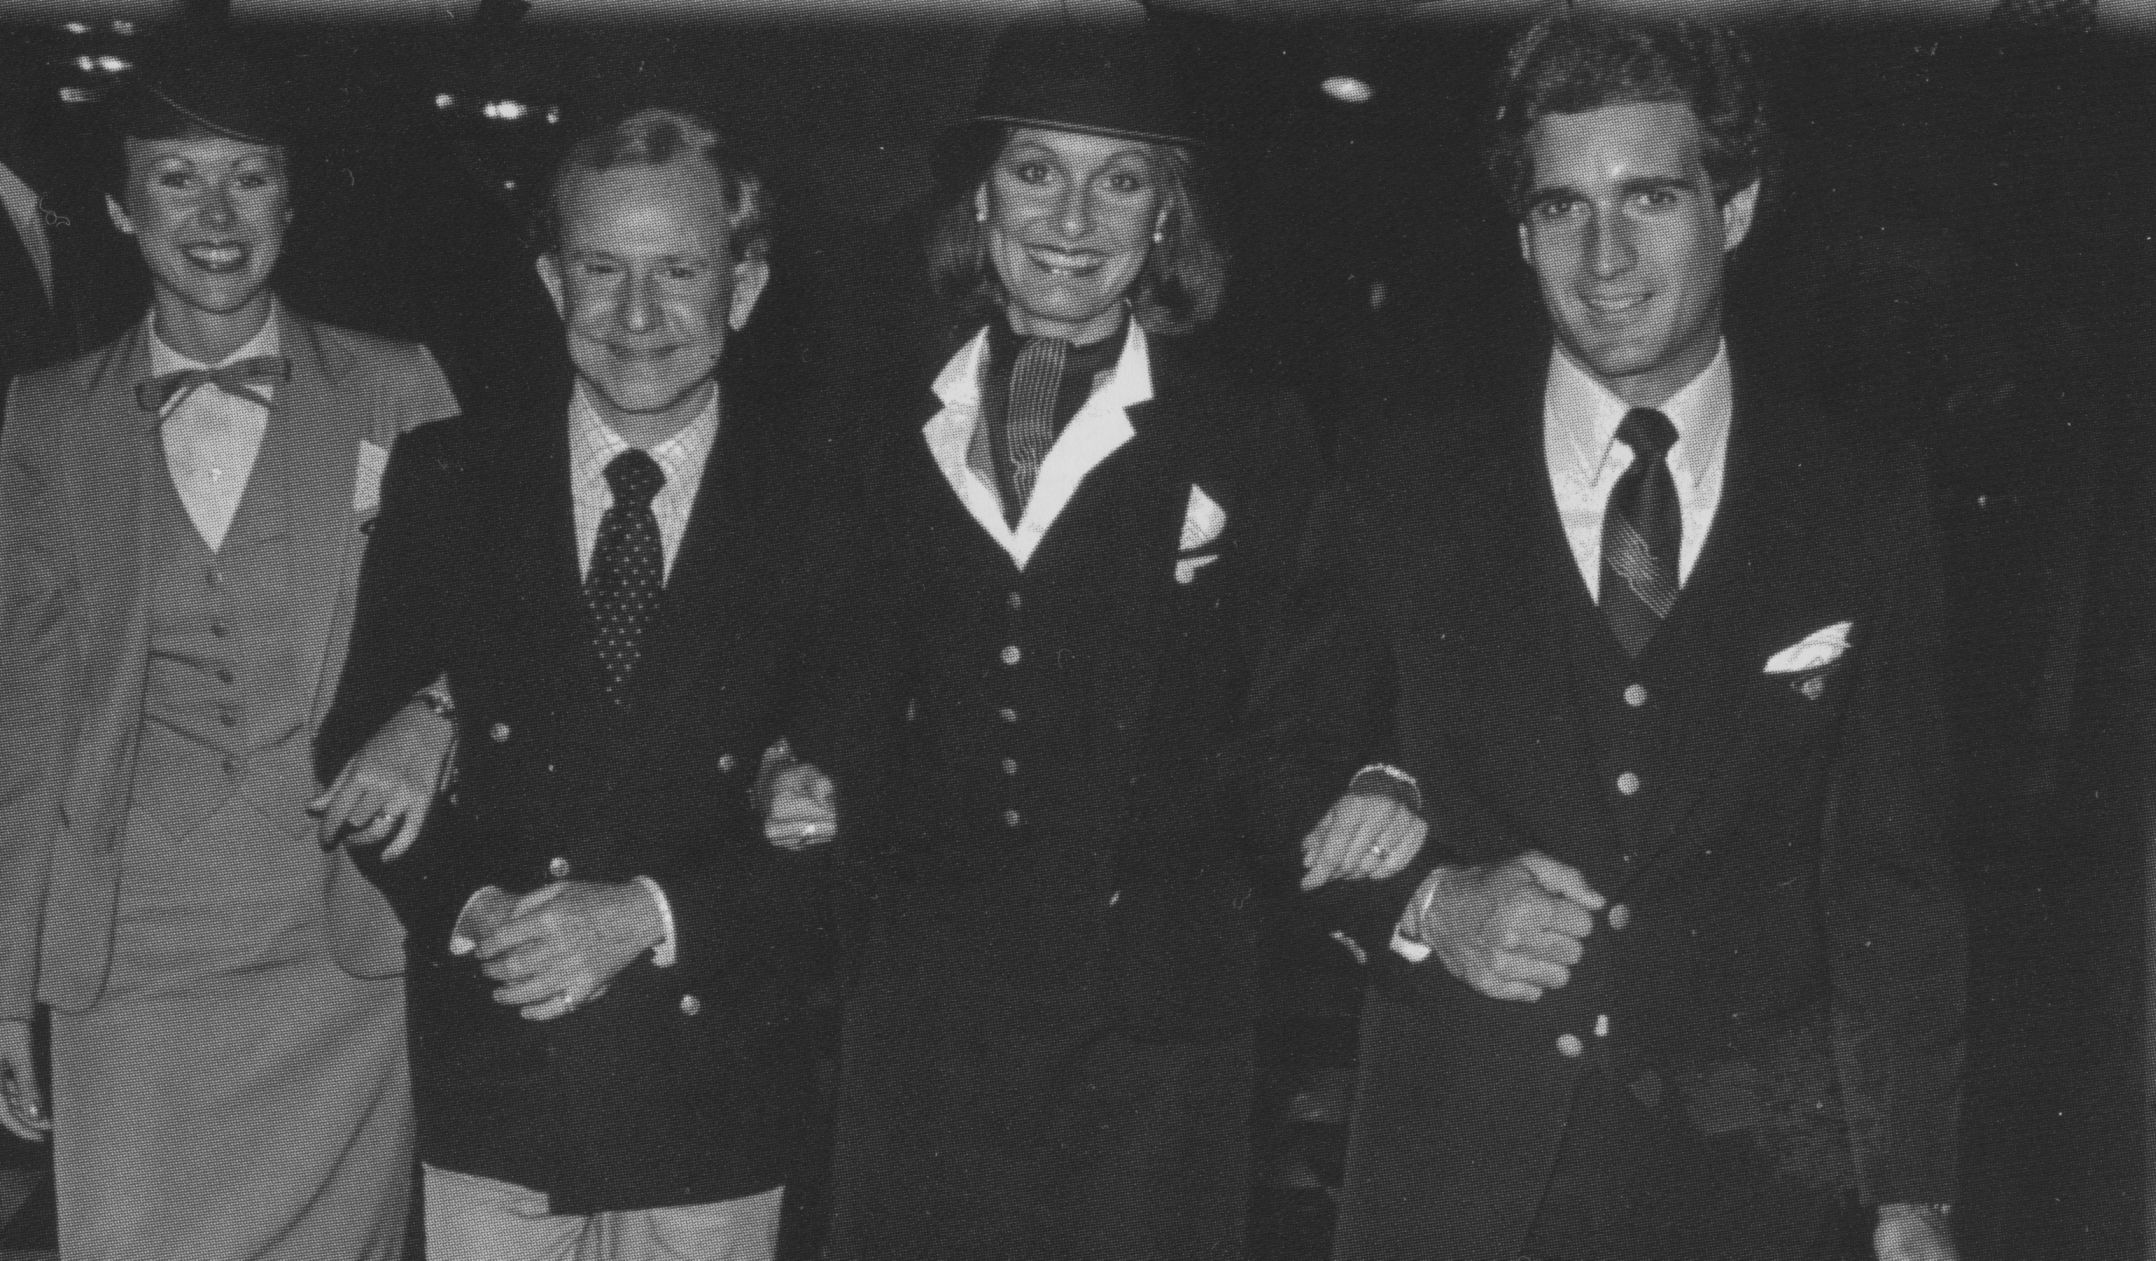 1980 Three Pan Am flight attendants pose with uniform designer Adolfo as he debuted their unifroms he designed exclusively for Pan Am.